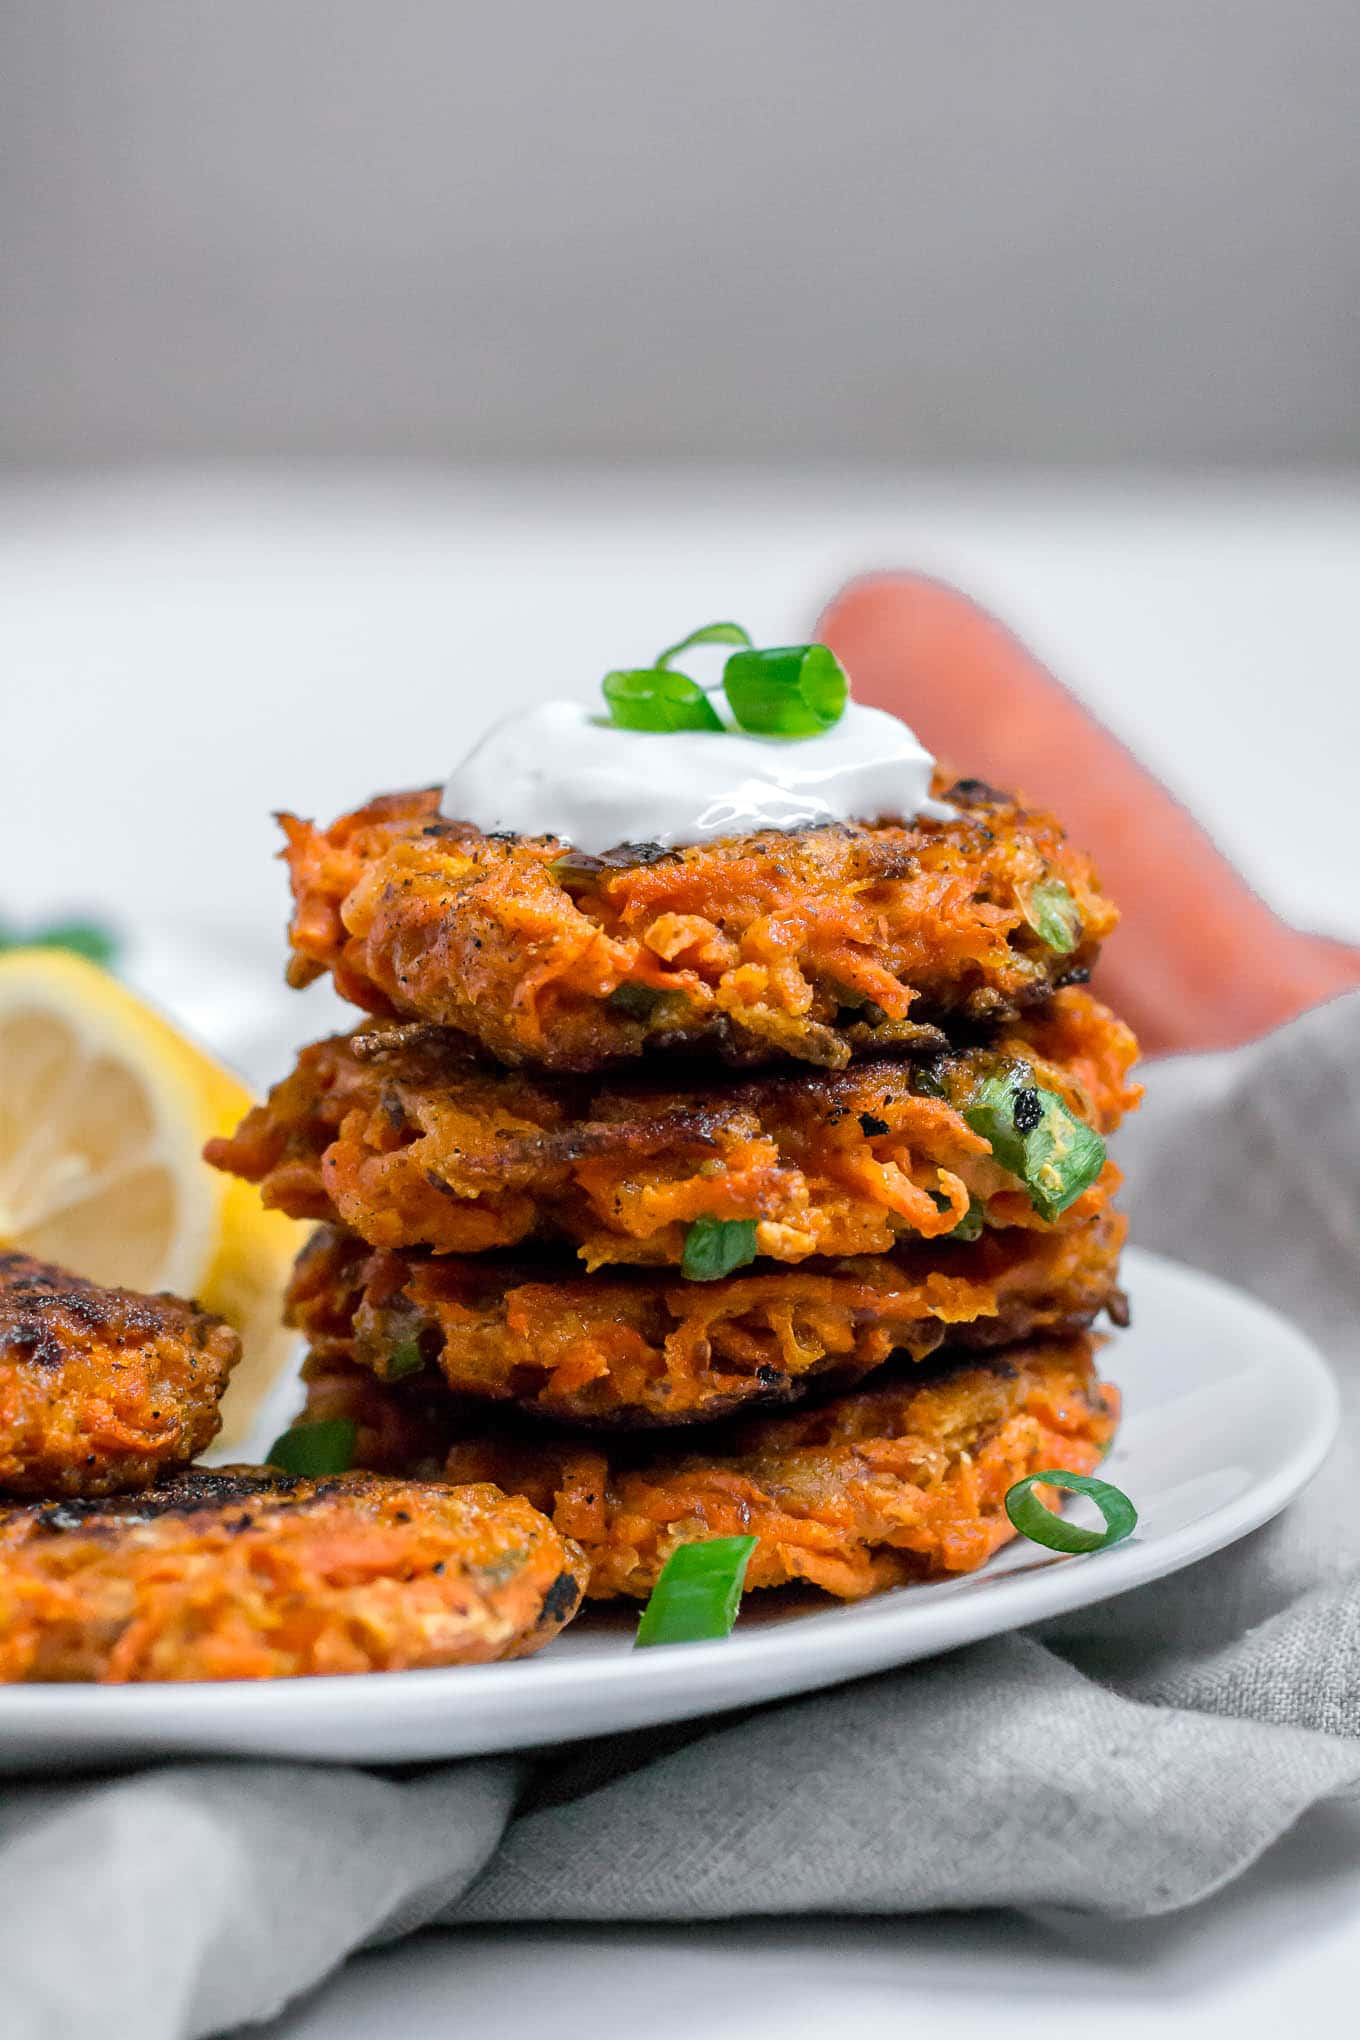 A straight on shot of a stack of gluten-free carrot fritters topped with greek yogurt and green onion with a lemon wedge off to the side on a white plate with gray napkin.